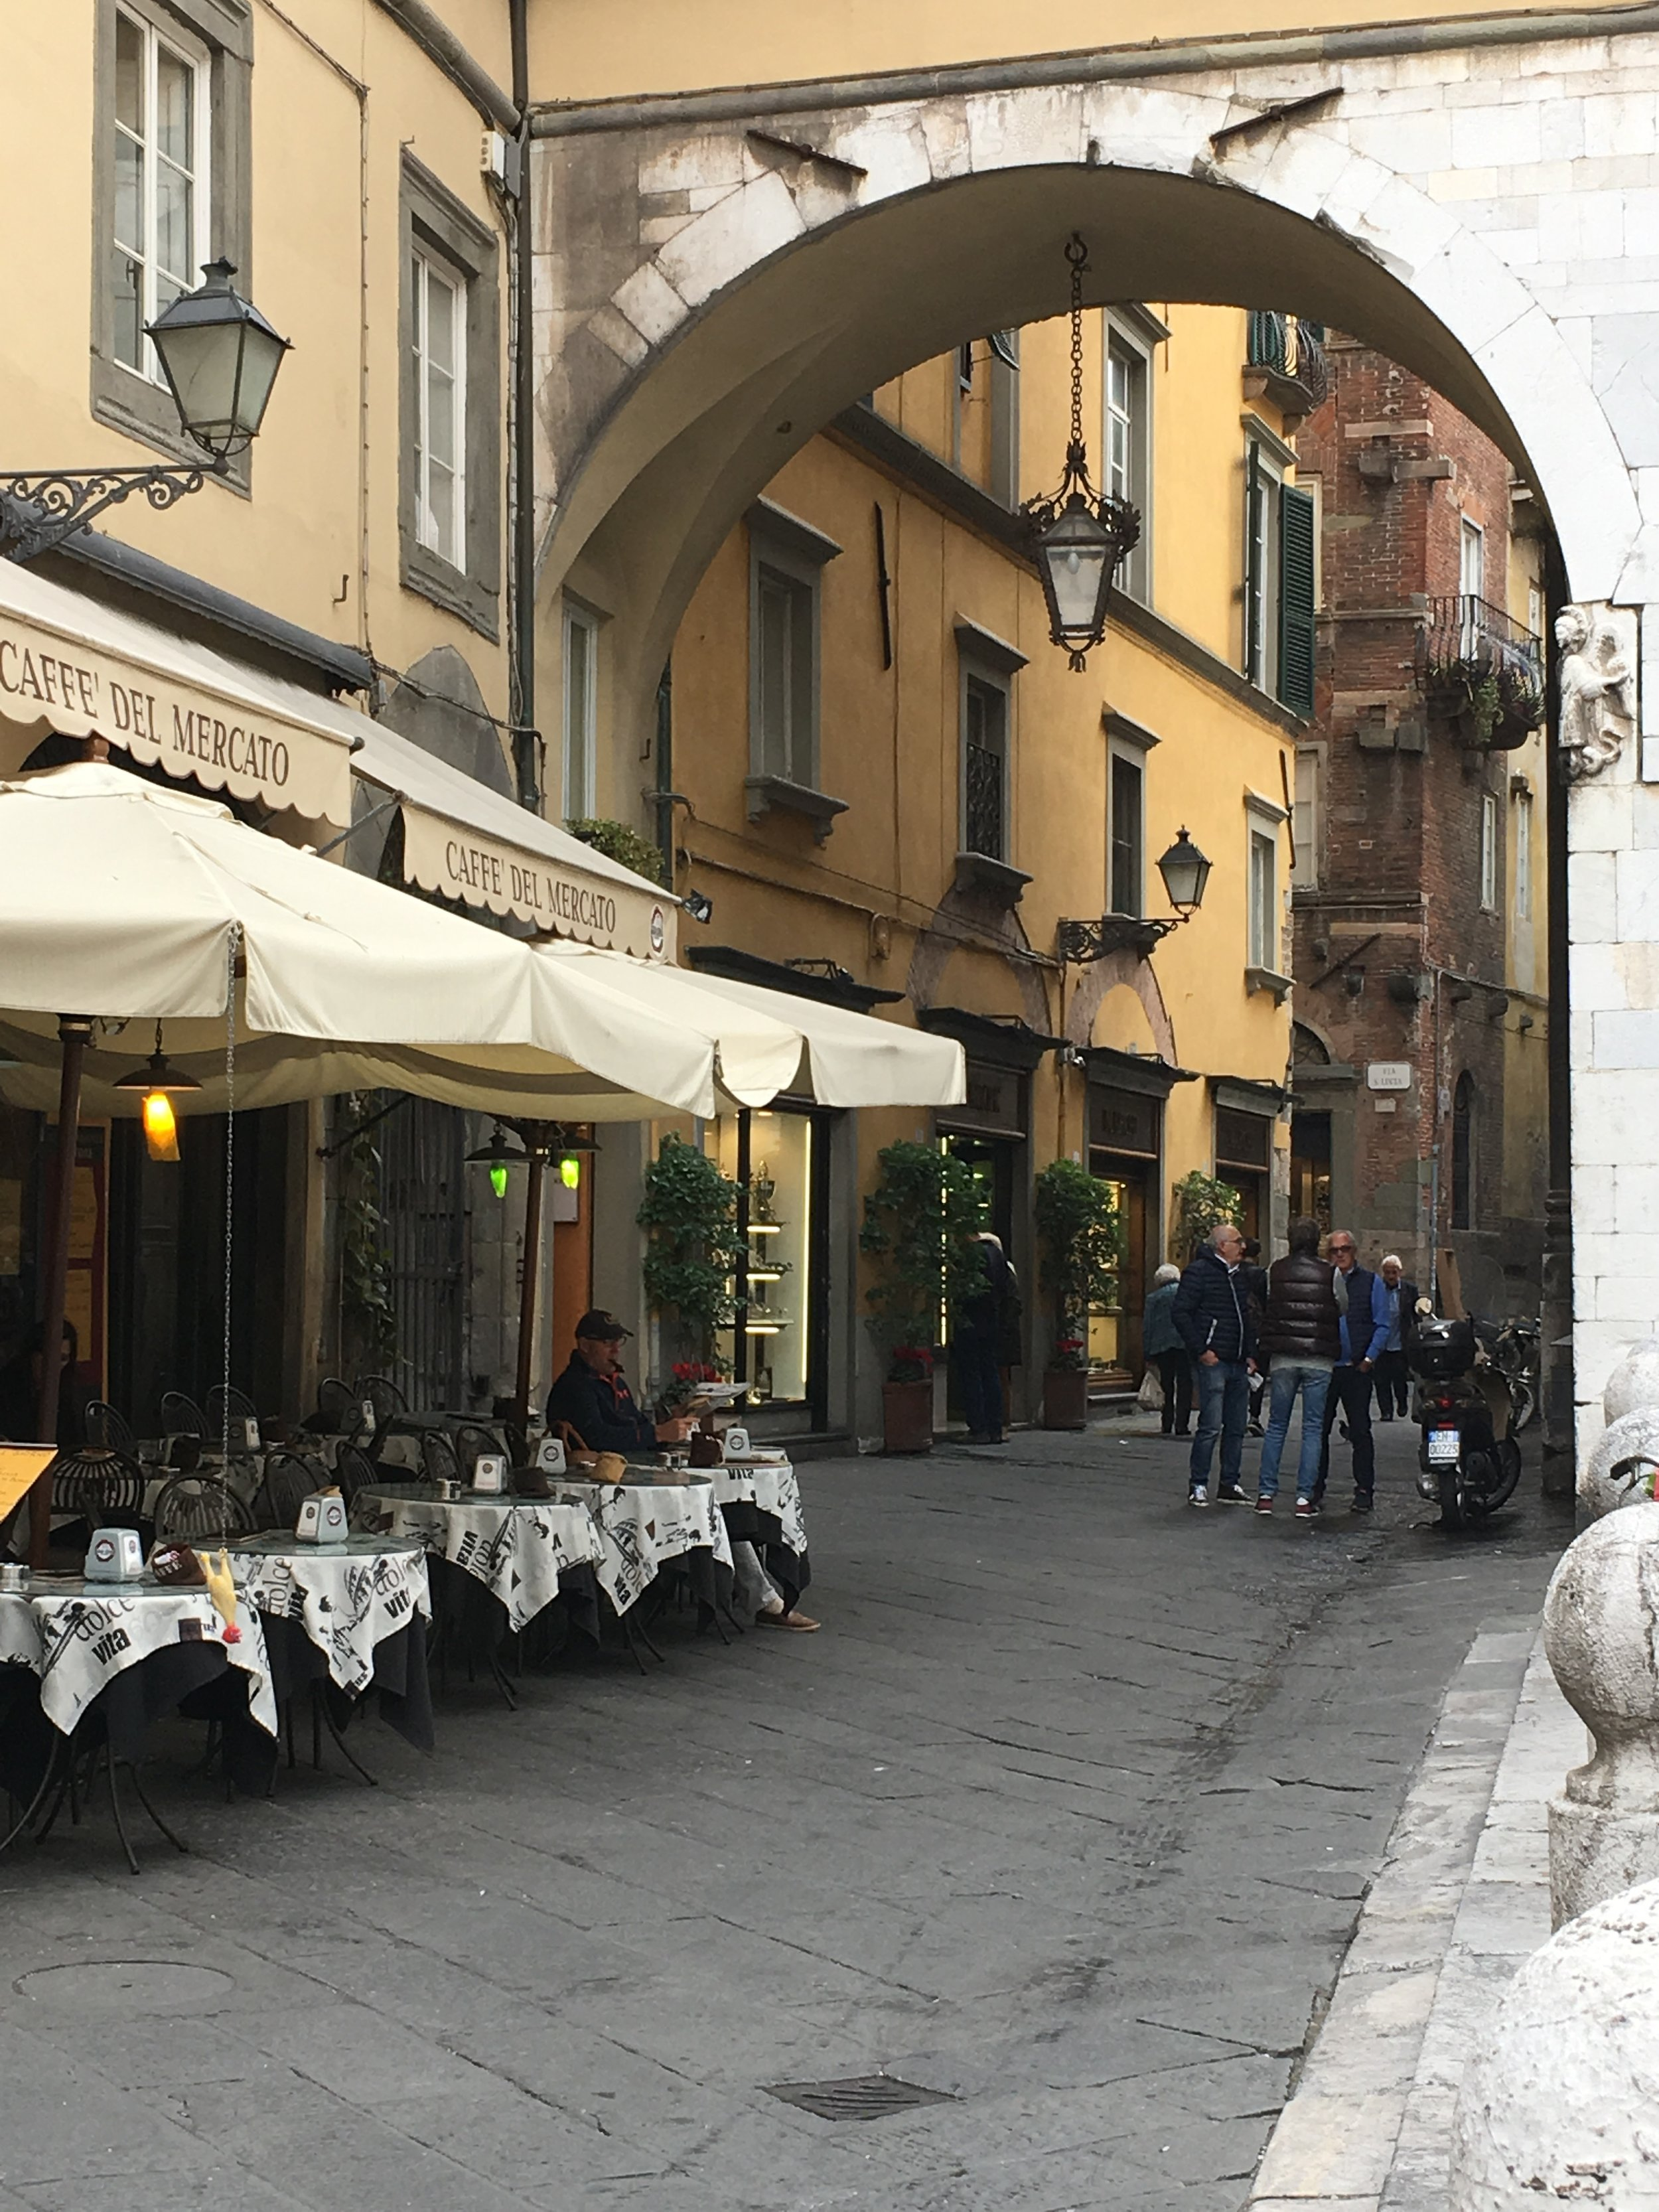 A favorite bar / cafe just off Piazza San Michele, Lucca